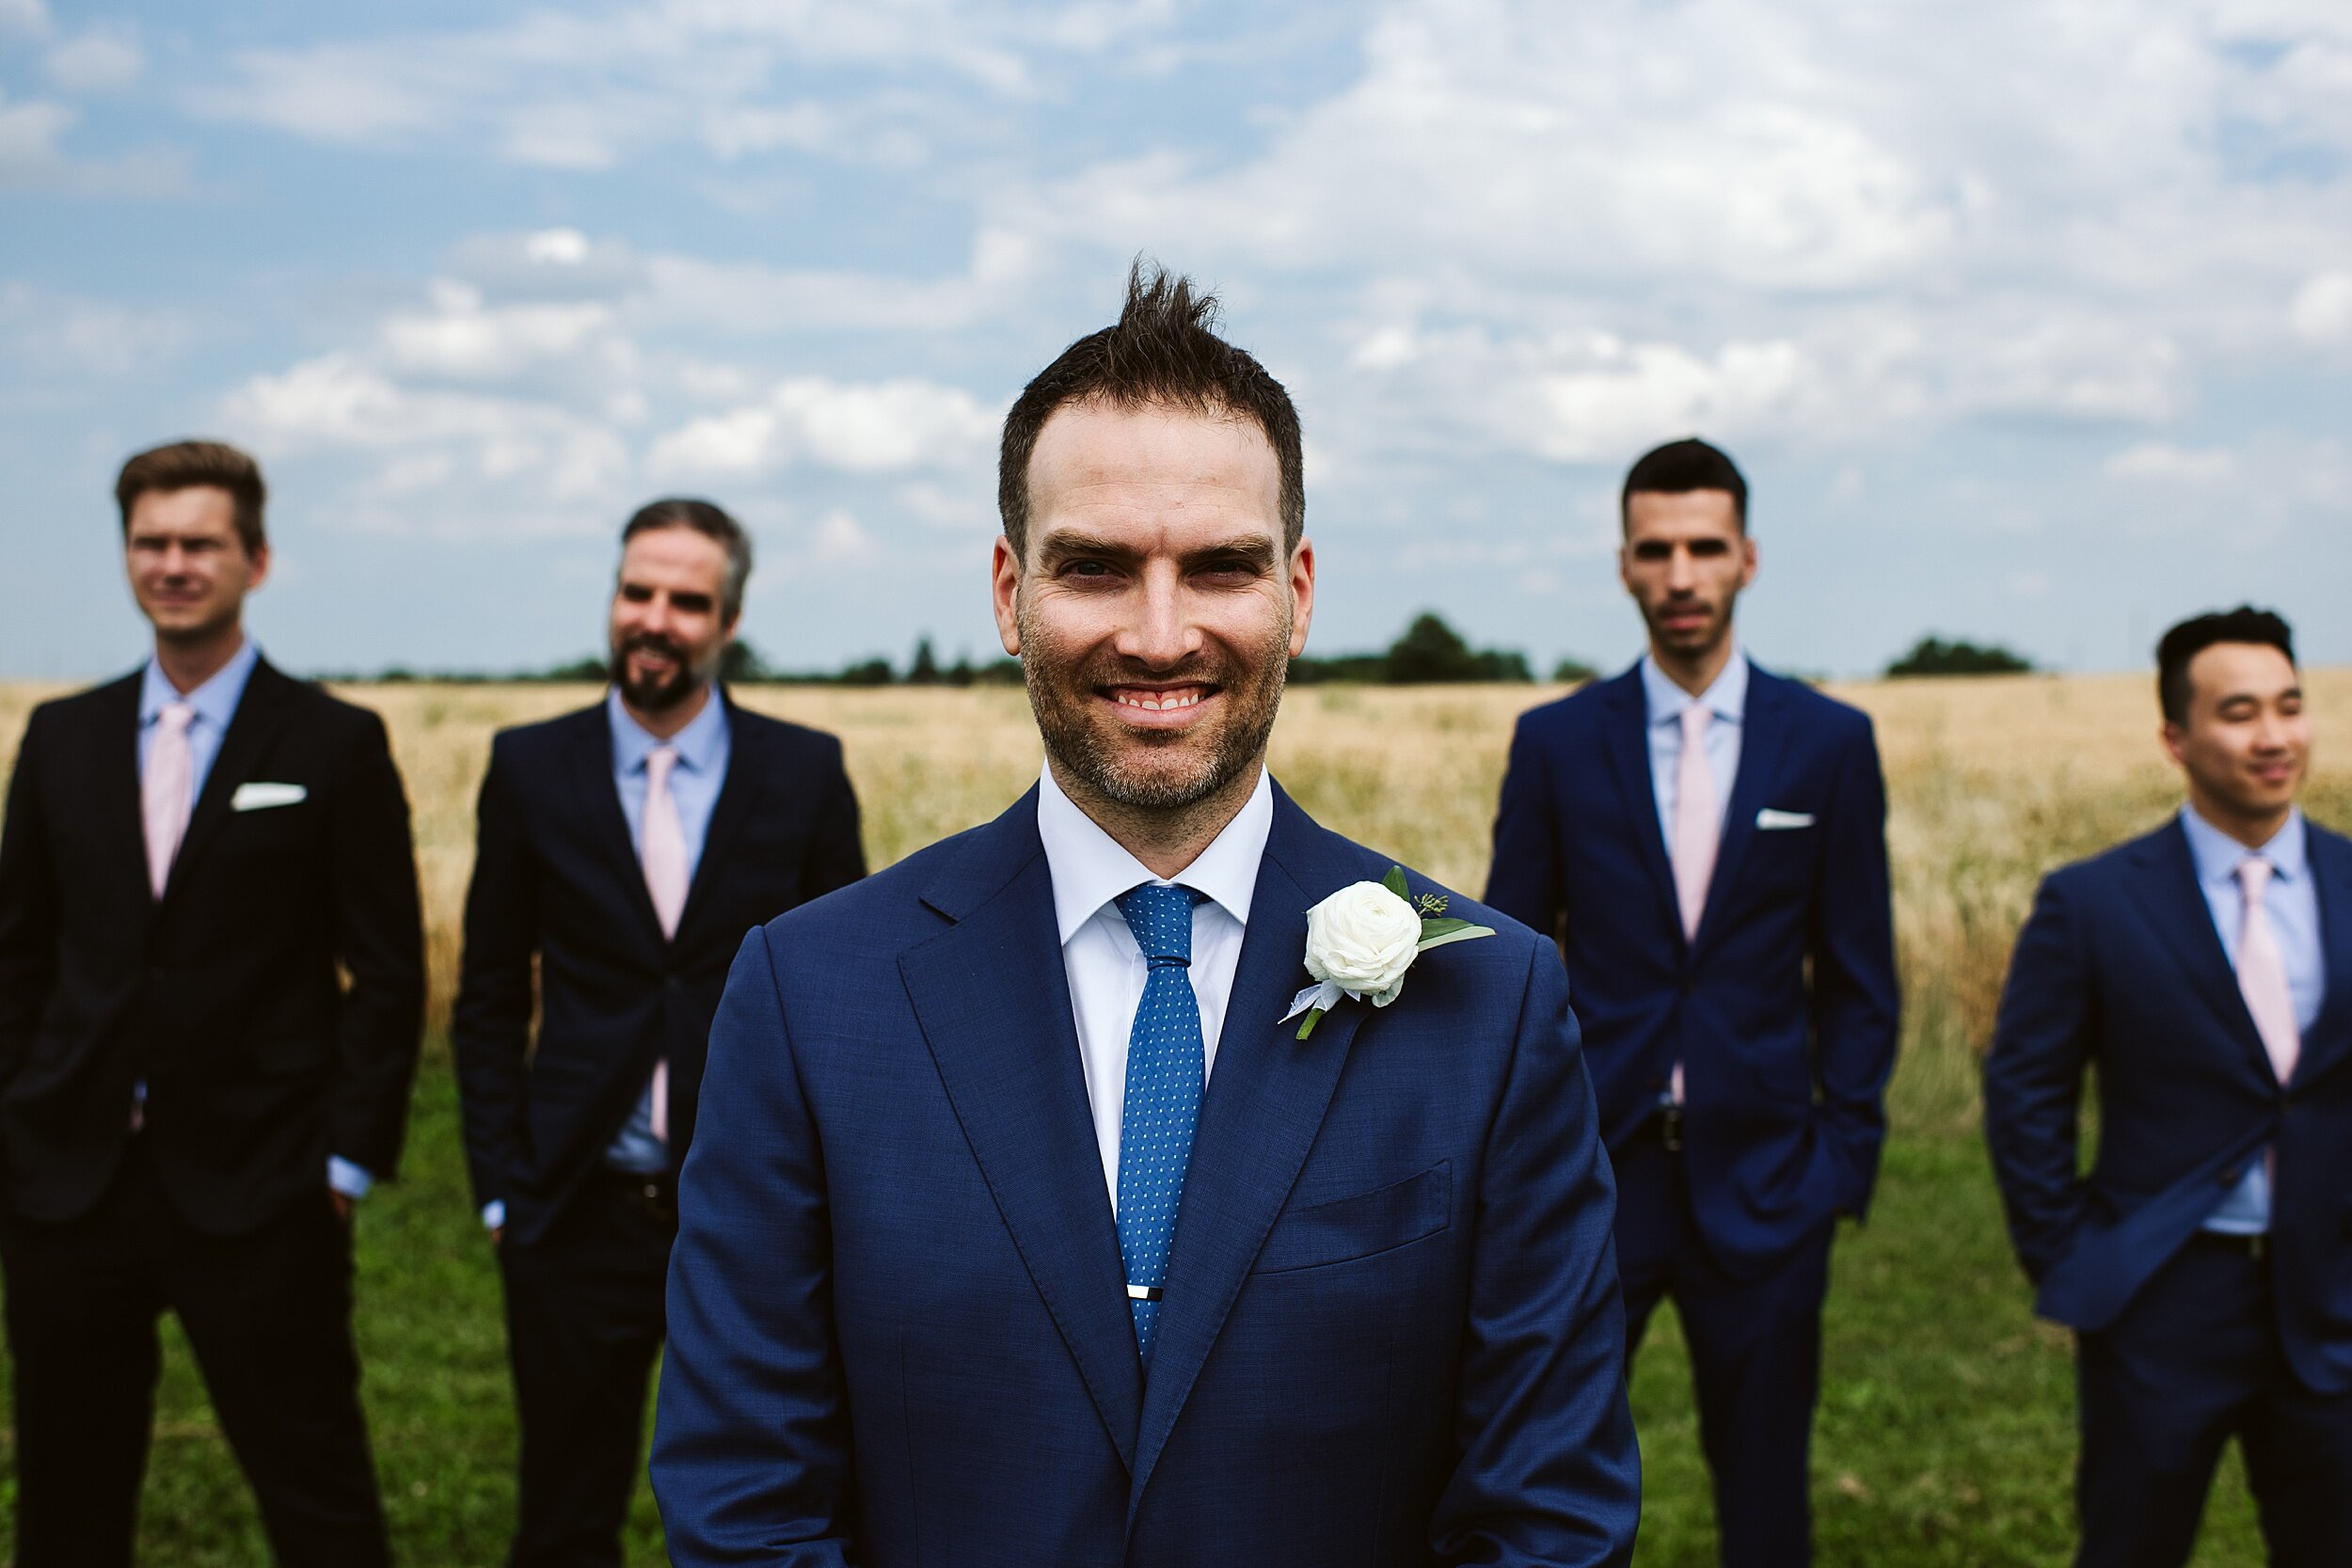 Glen_Drummon_Farm_Wedding_Toronto_Photographers_Fox_Photography_Dyments_0018.jpg